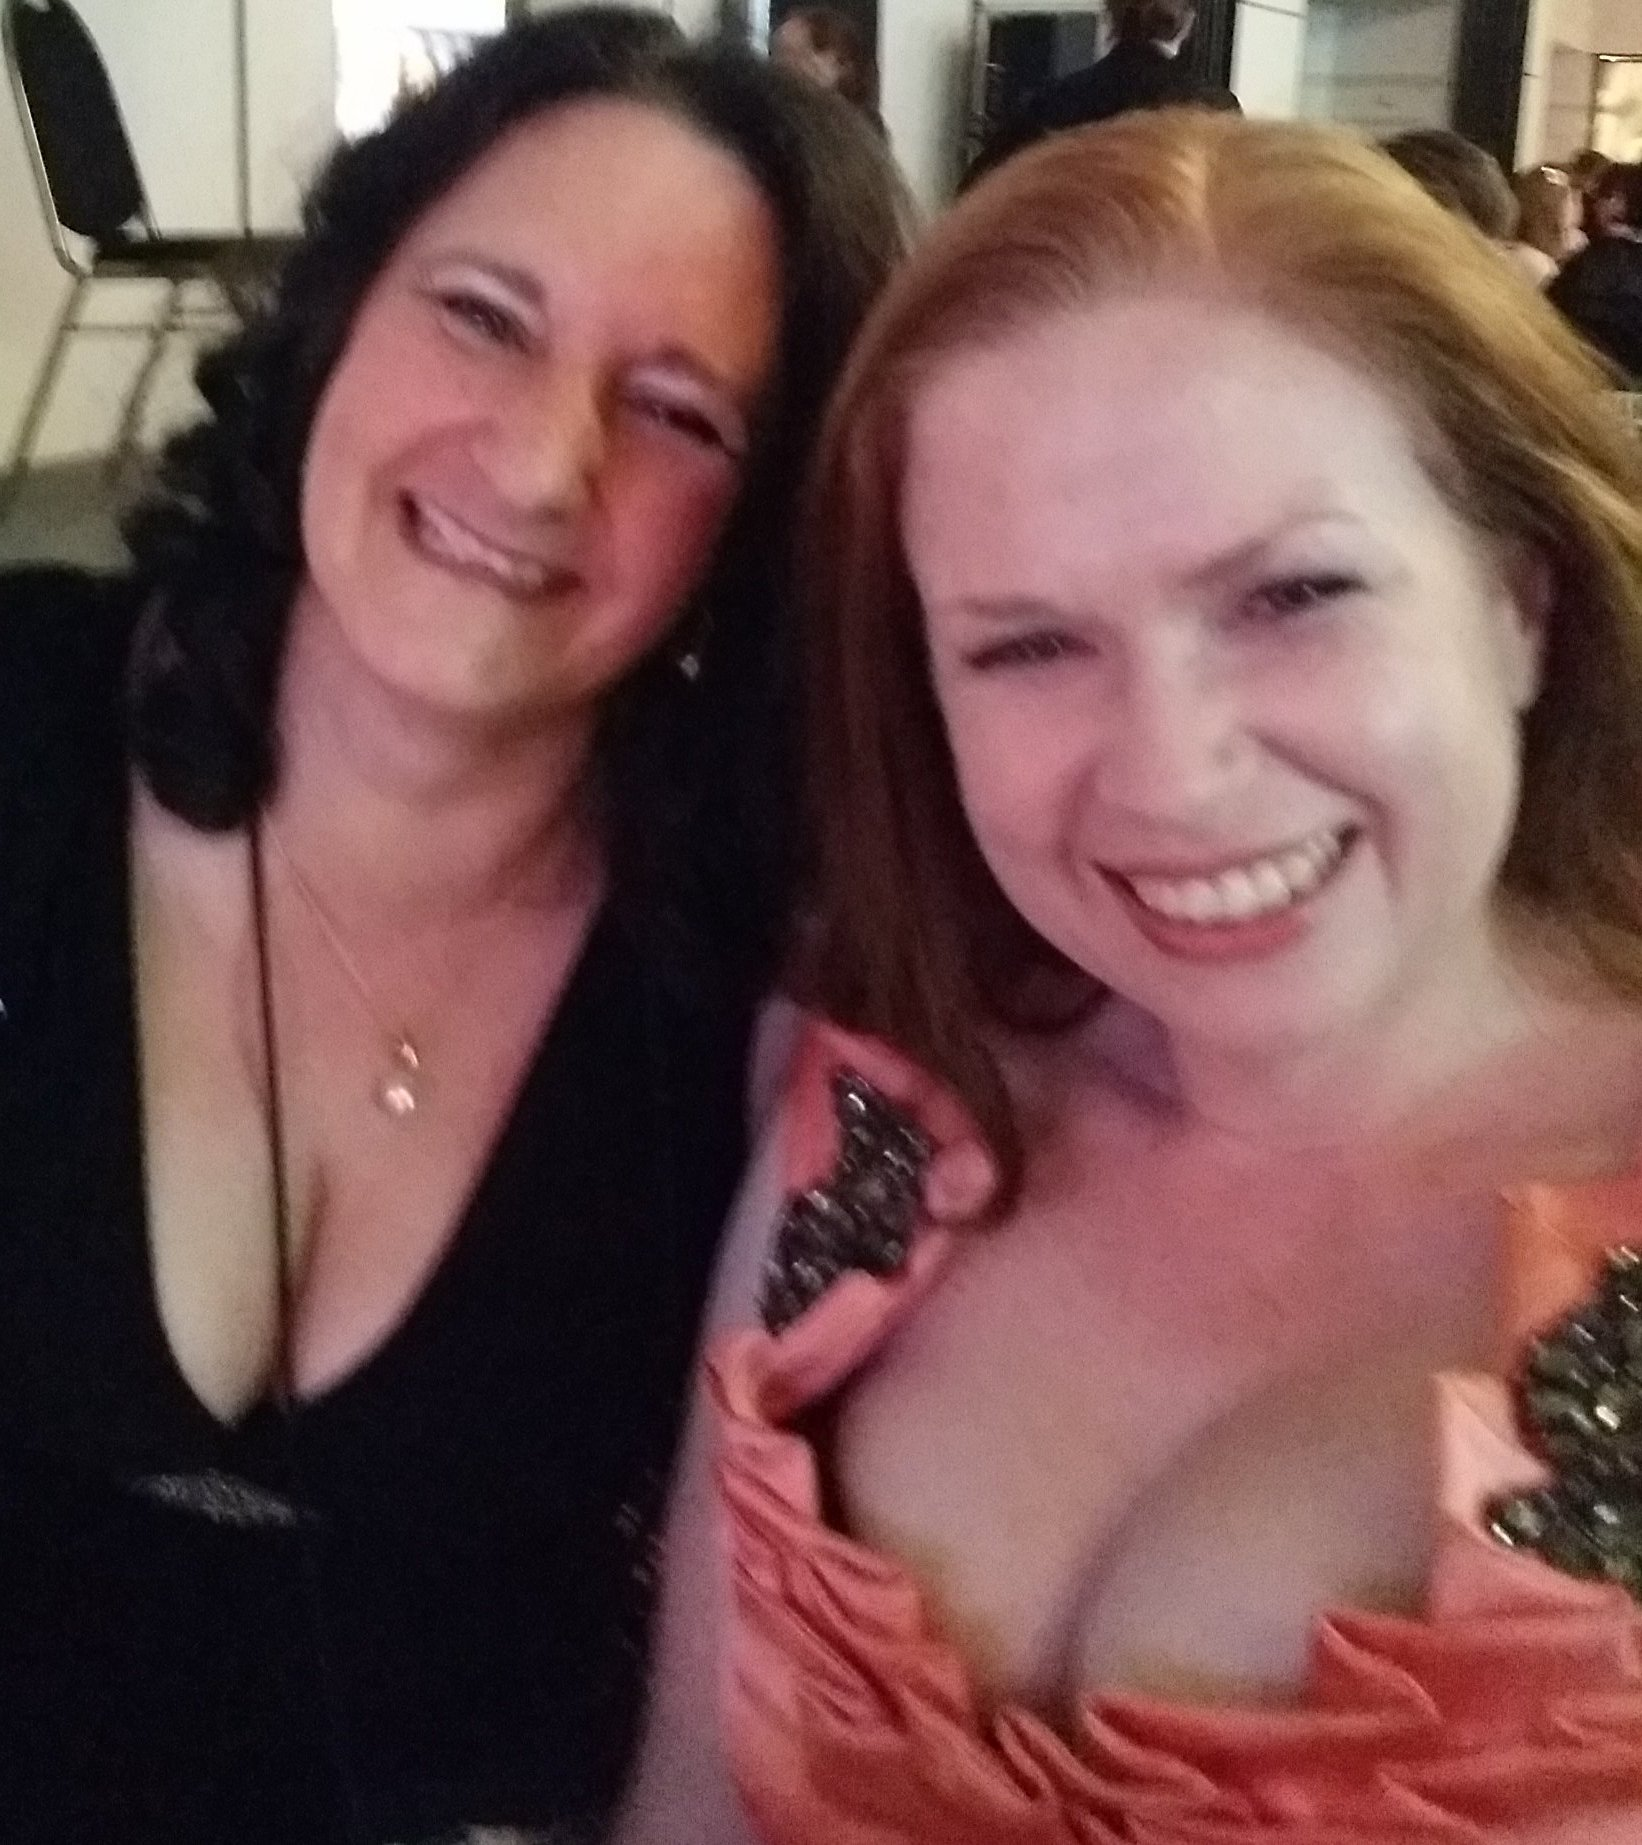 At the #RWAus16 awards dinner with @msomerswriter Good luck for the RuBY Award Michelle! #romance #writers https://t.co/BFjIPKGK3v